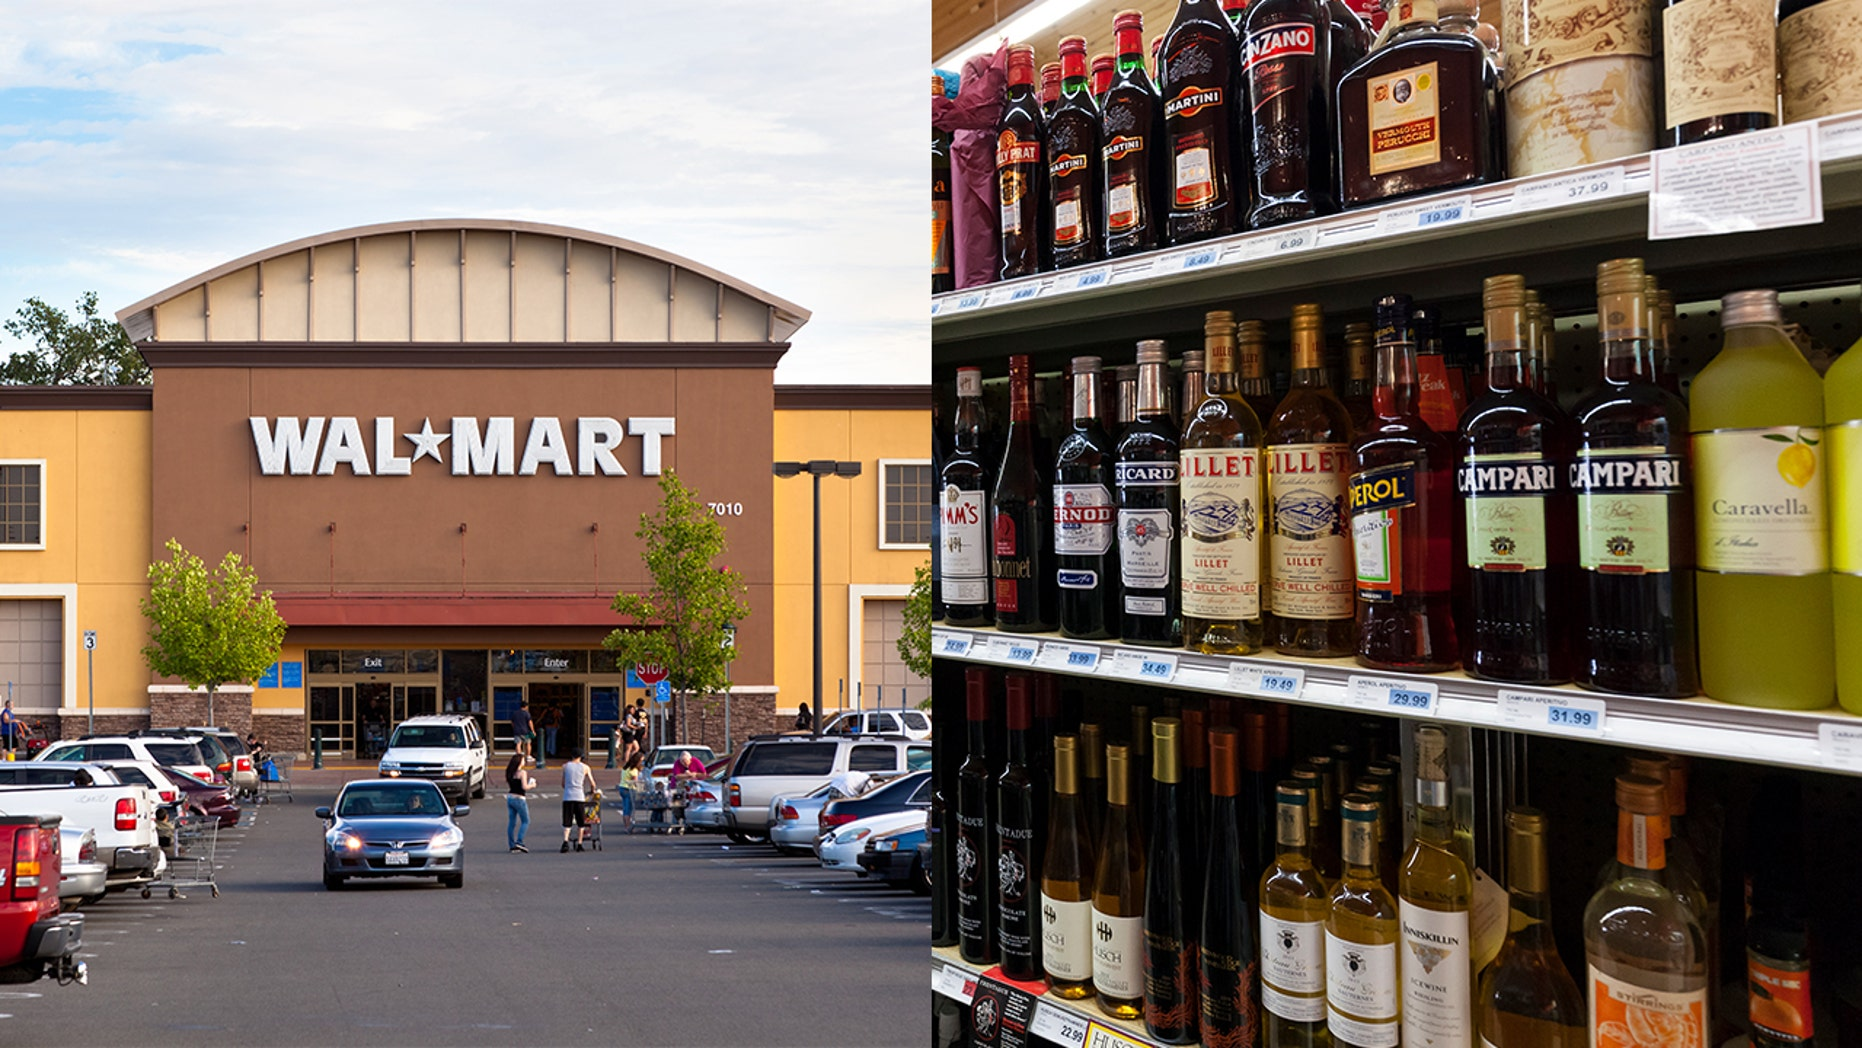 A federal judge in Texas overturned a law preventing big-box public retailers from selling liquor, though opponents plan to appeal.